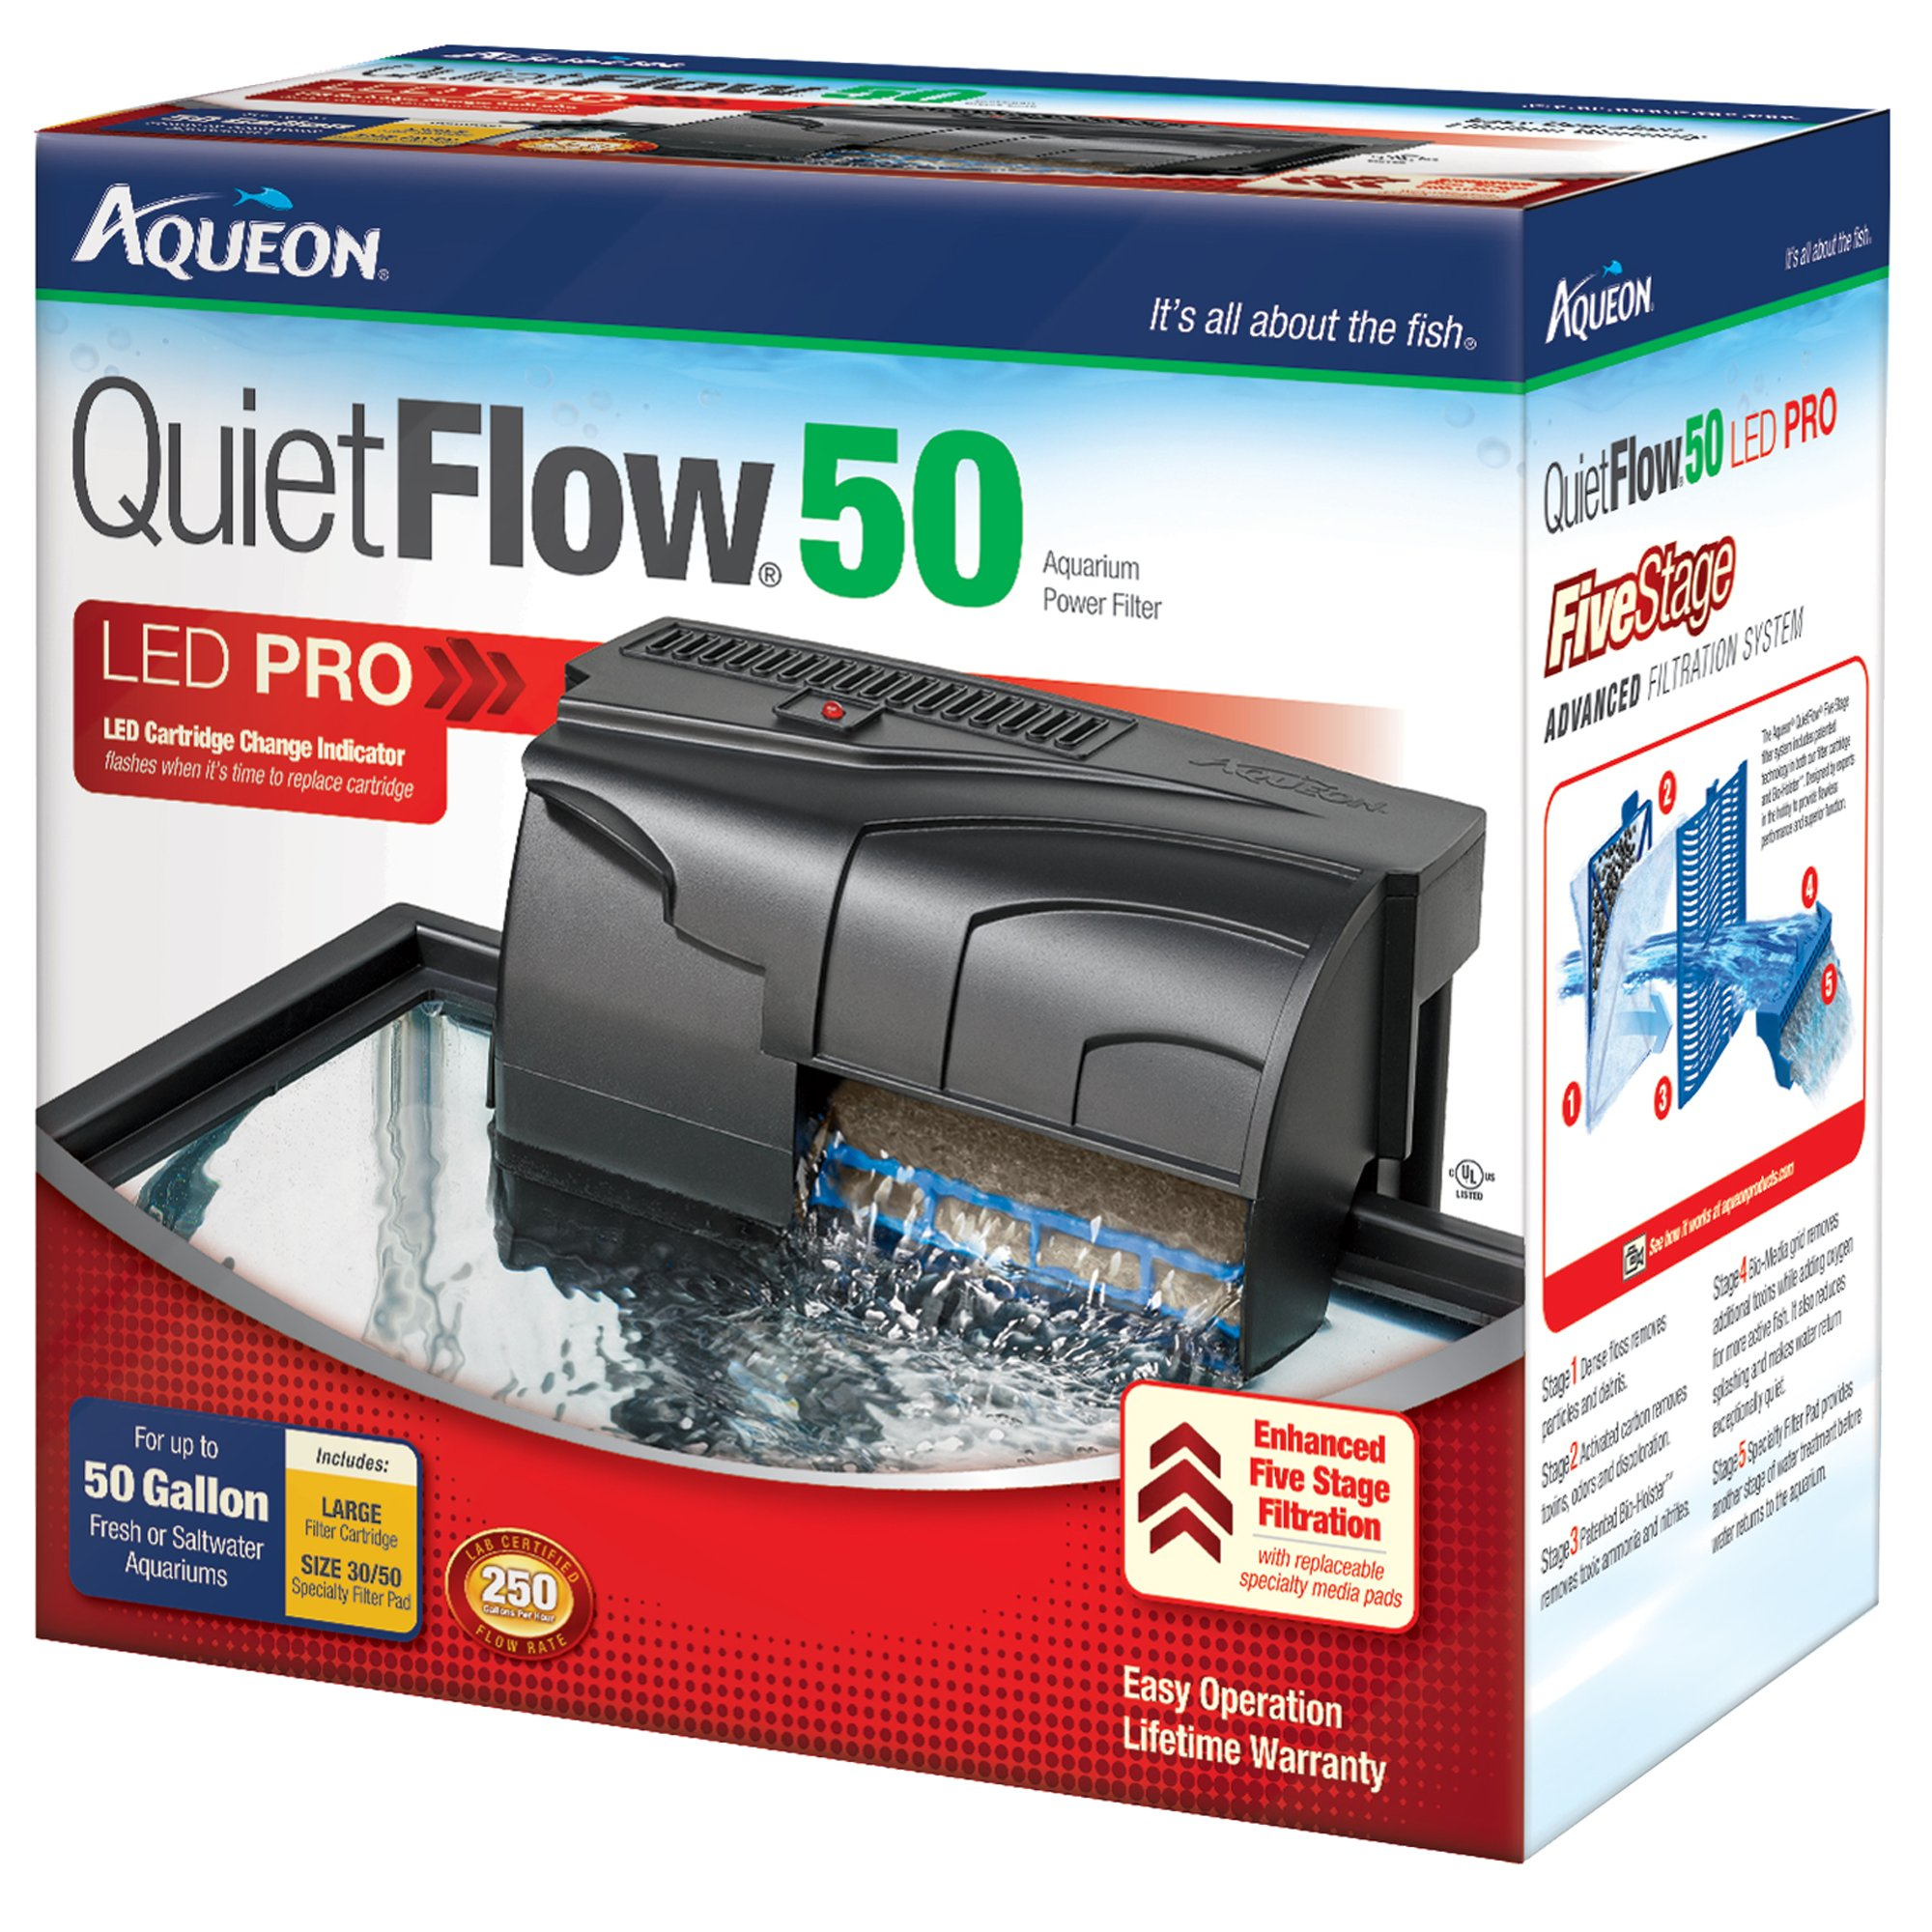 Aqueon quietflow 50 aquarium power filter petco for Petco fish tank filters